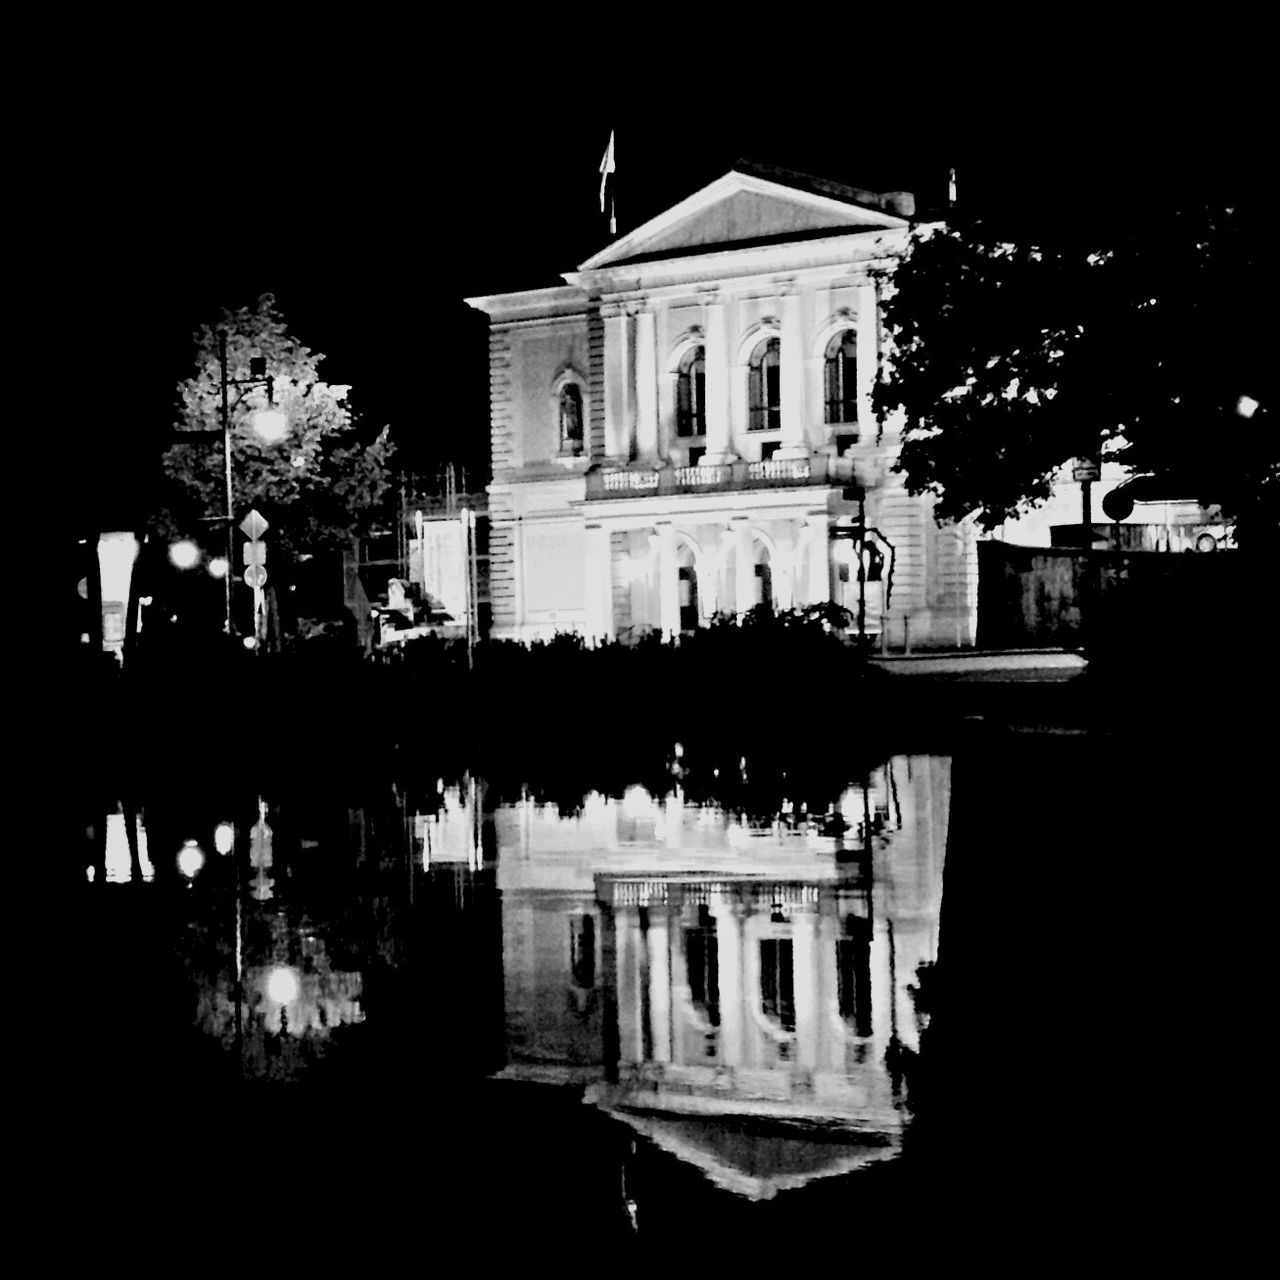 Reflection of building and trees in lake at night